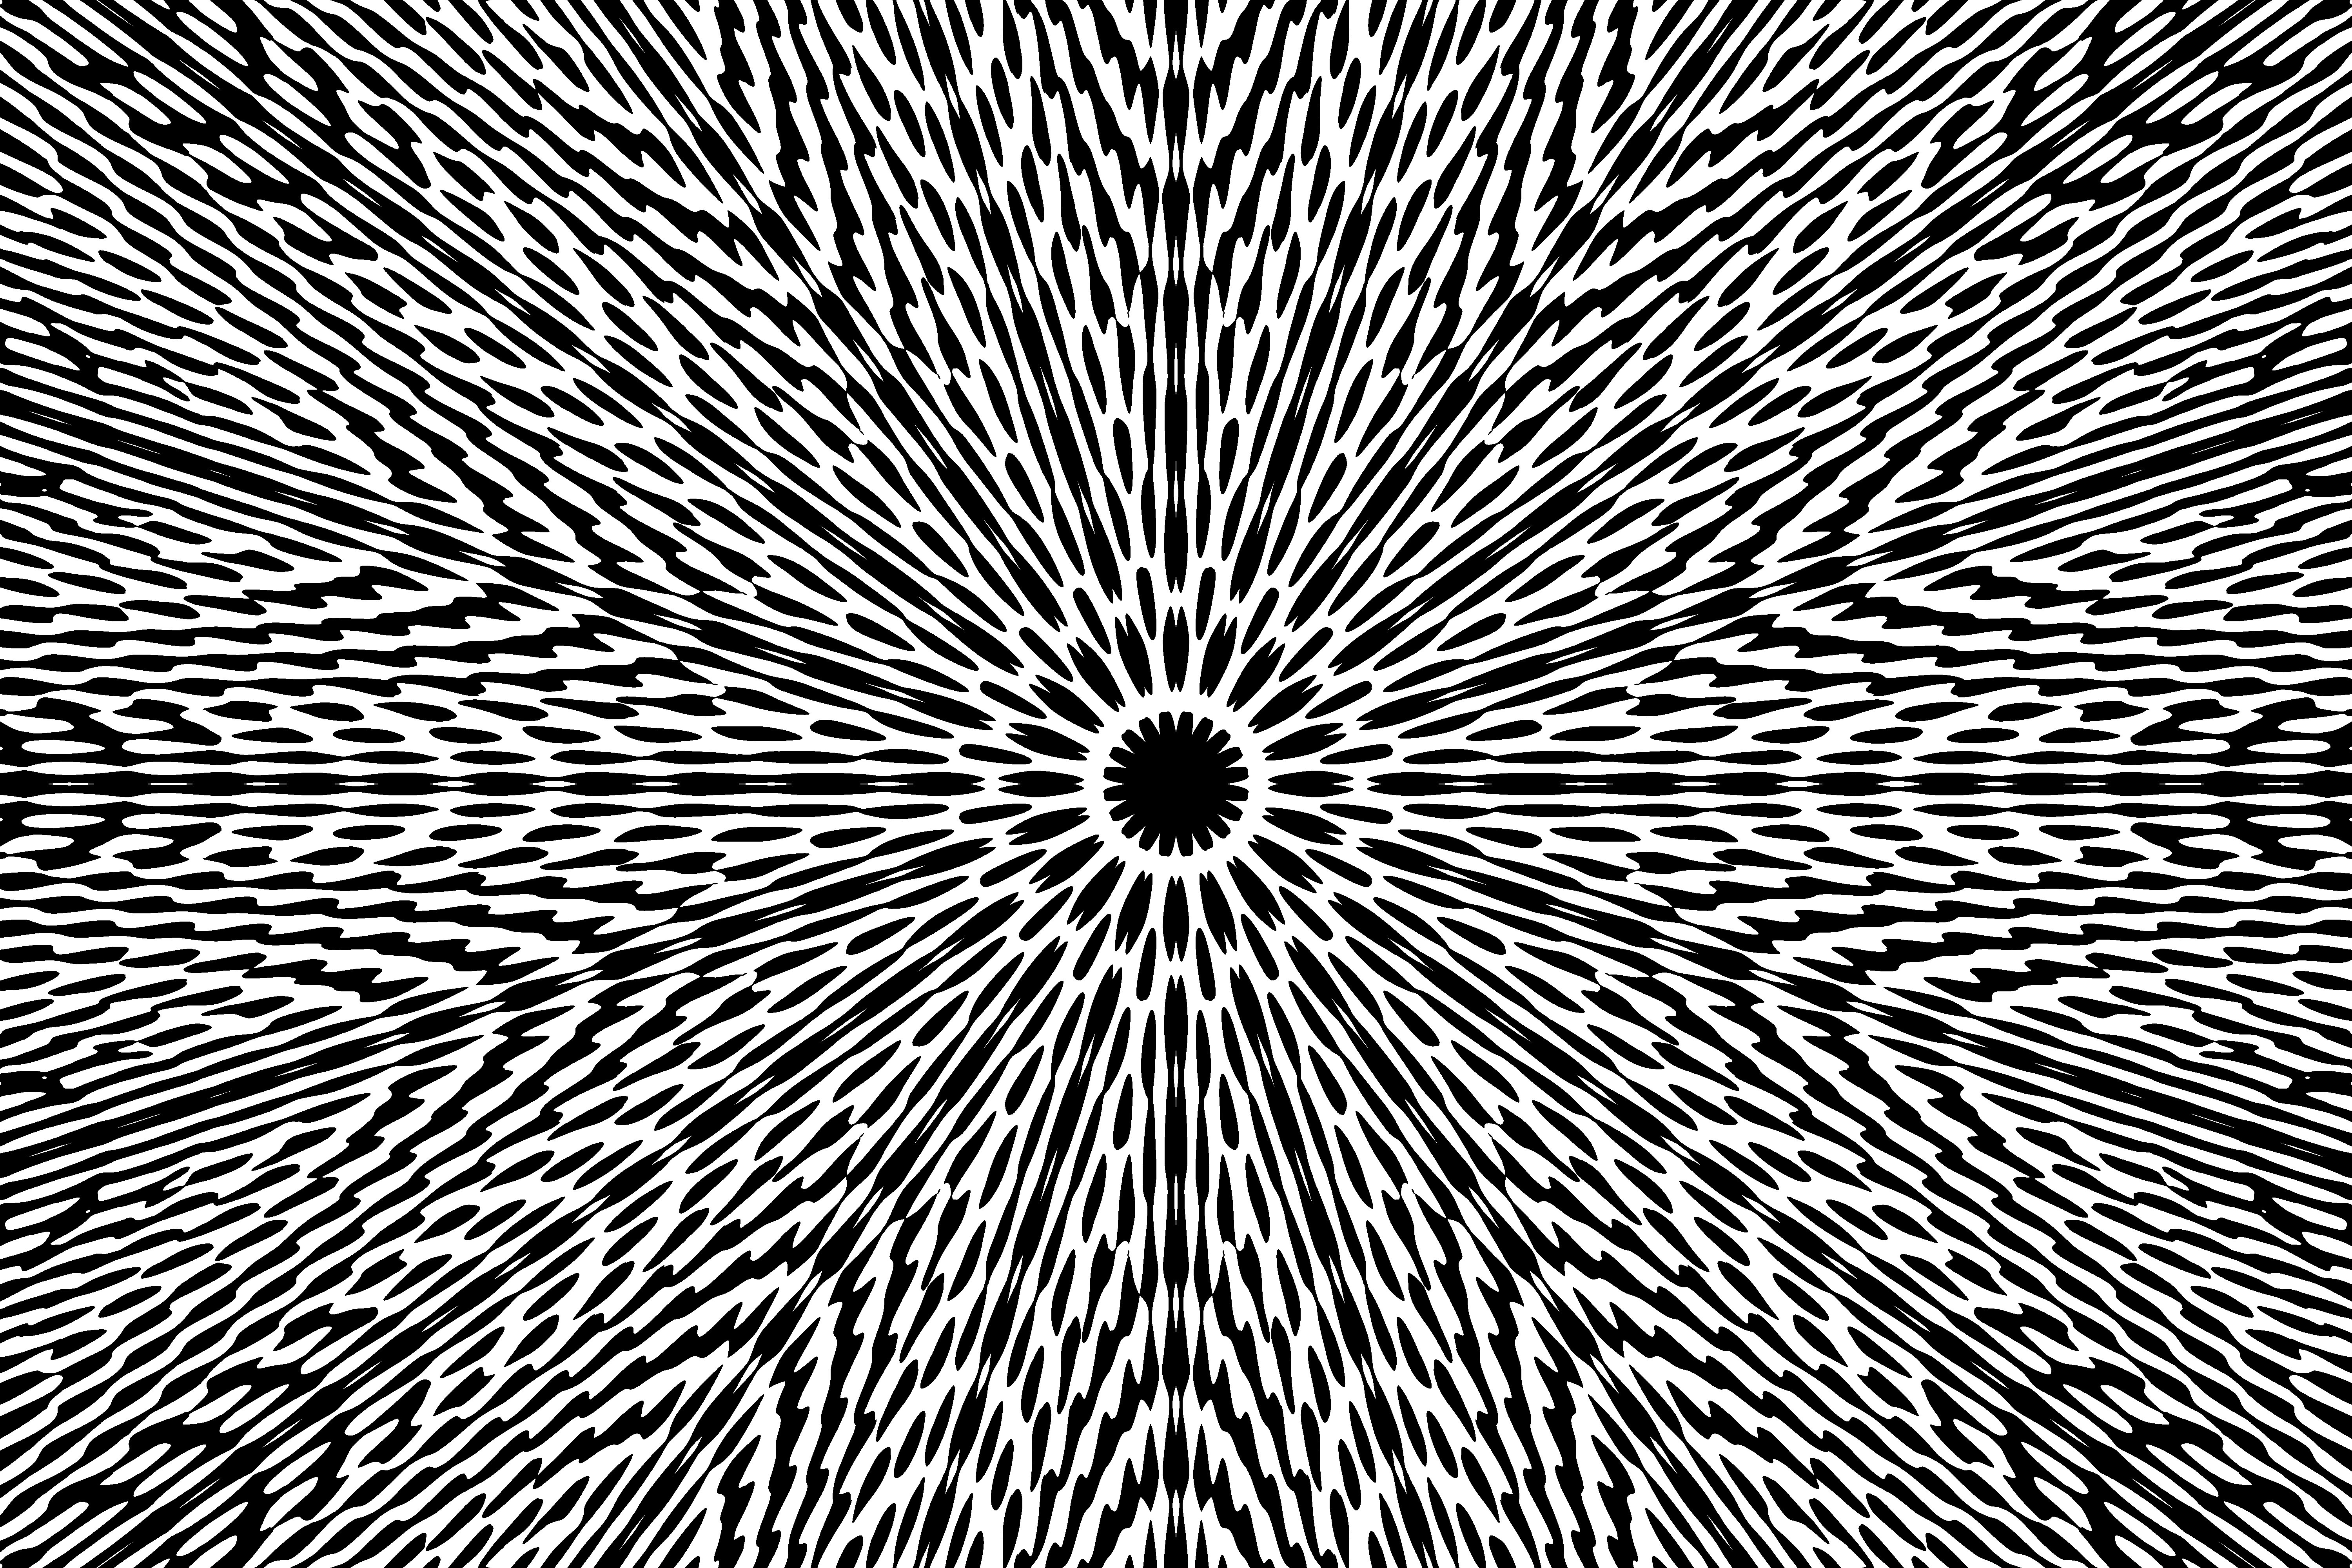 Abstract Black And White 5k Retina Ultra Hd Wallpaper